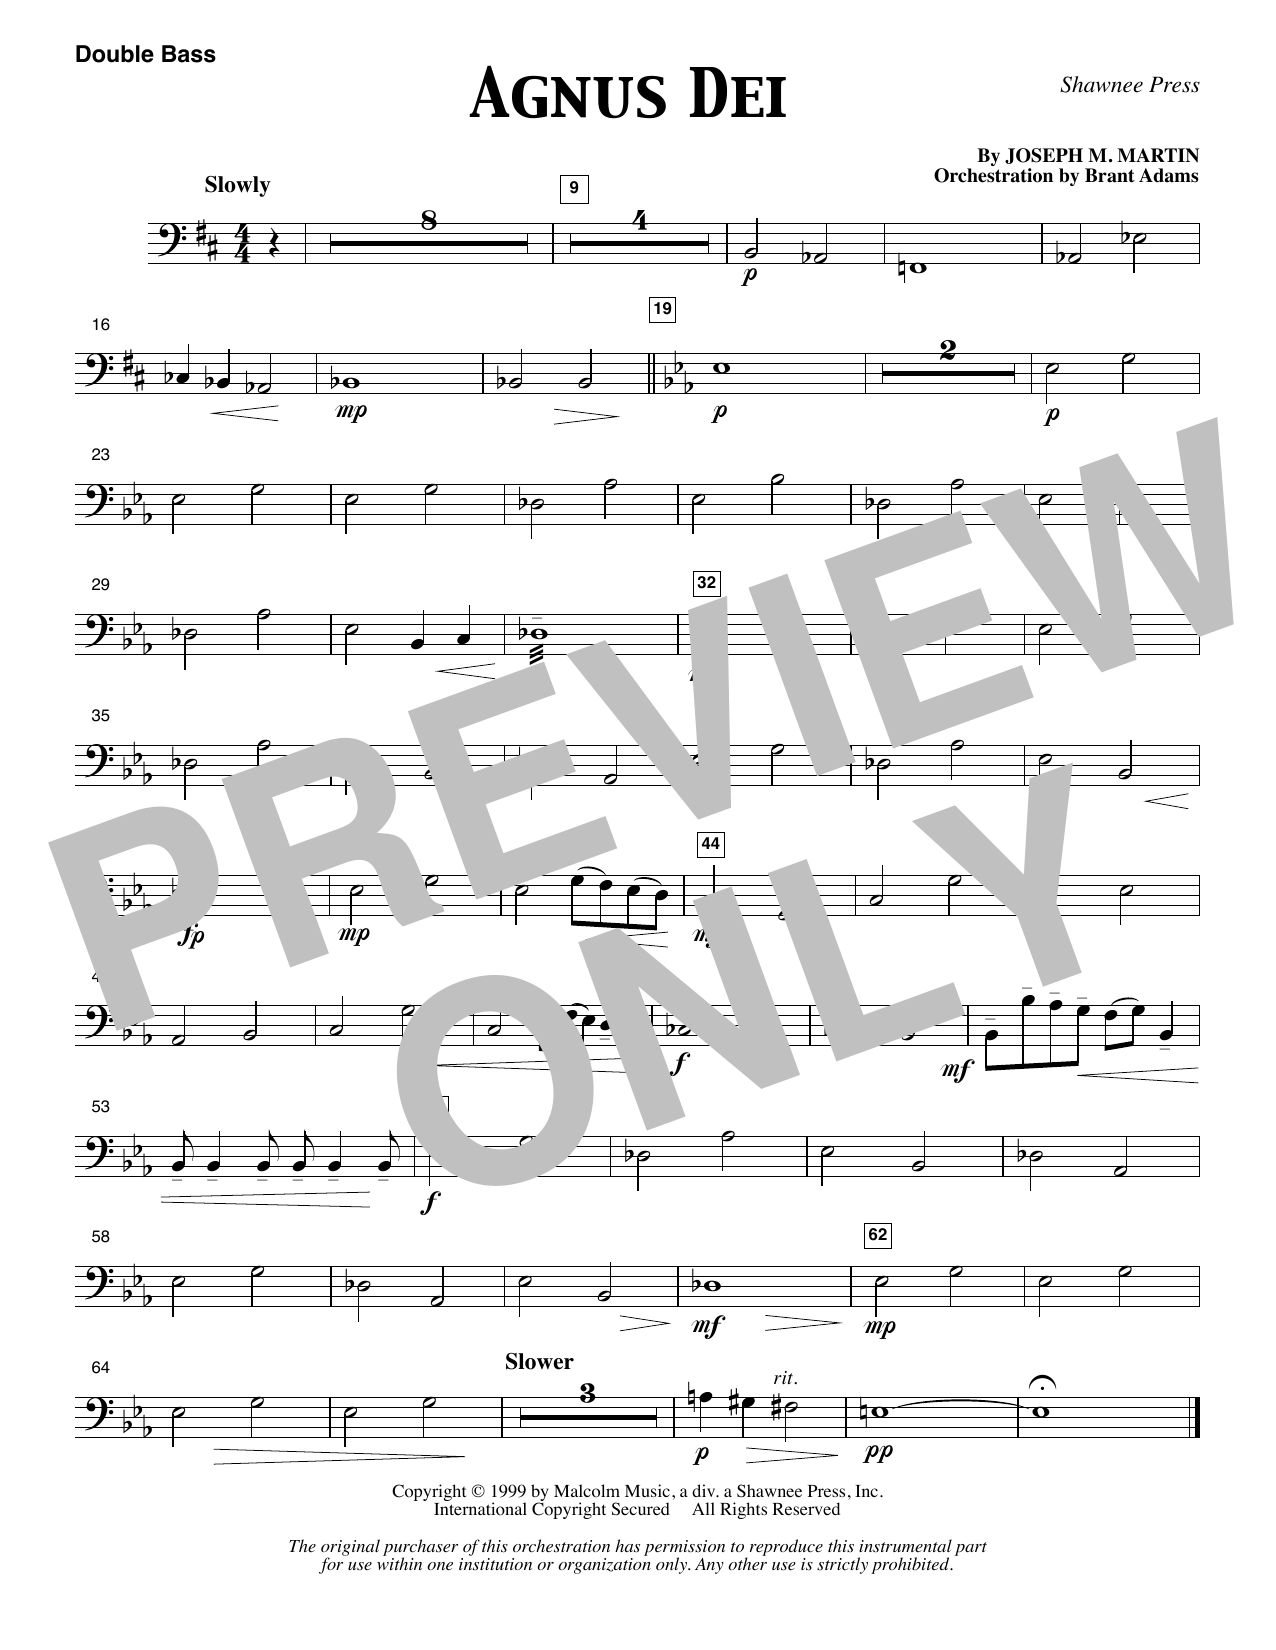 Joseph M. Martin Agnus Dei - Double Bass sheet music notes and chords. Download Printable PDF.